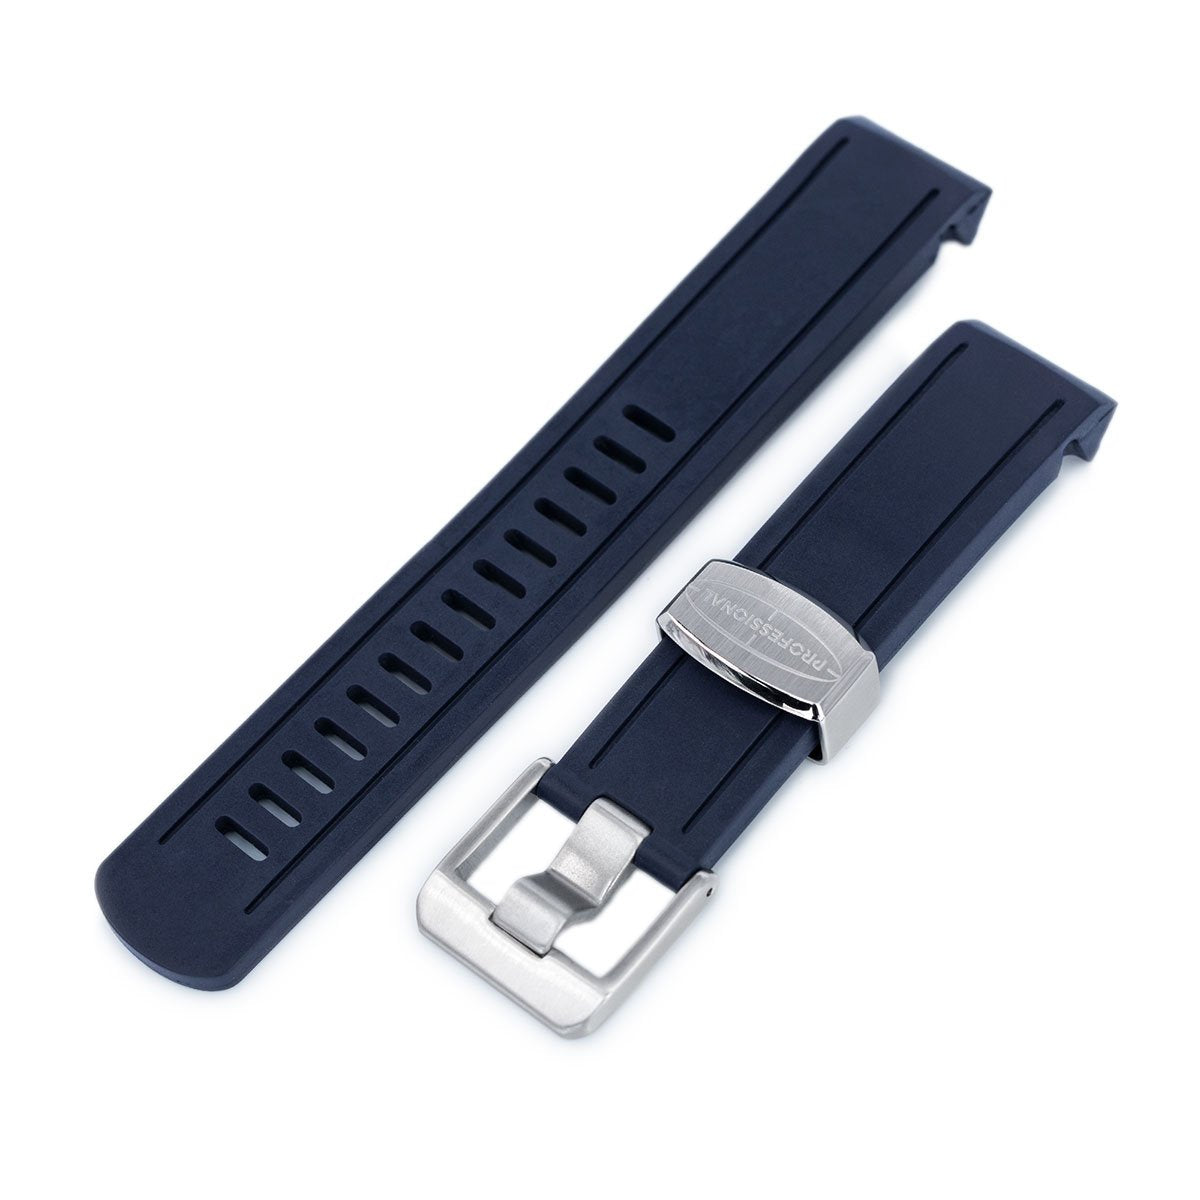 20mm Crafter Blue Navy Blue Rubber Curved Lug Watch Band for Seiko Sumo SBDC001 Strapcode Watch Bands